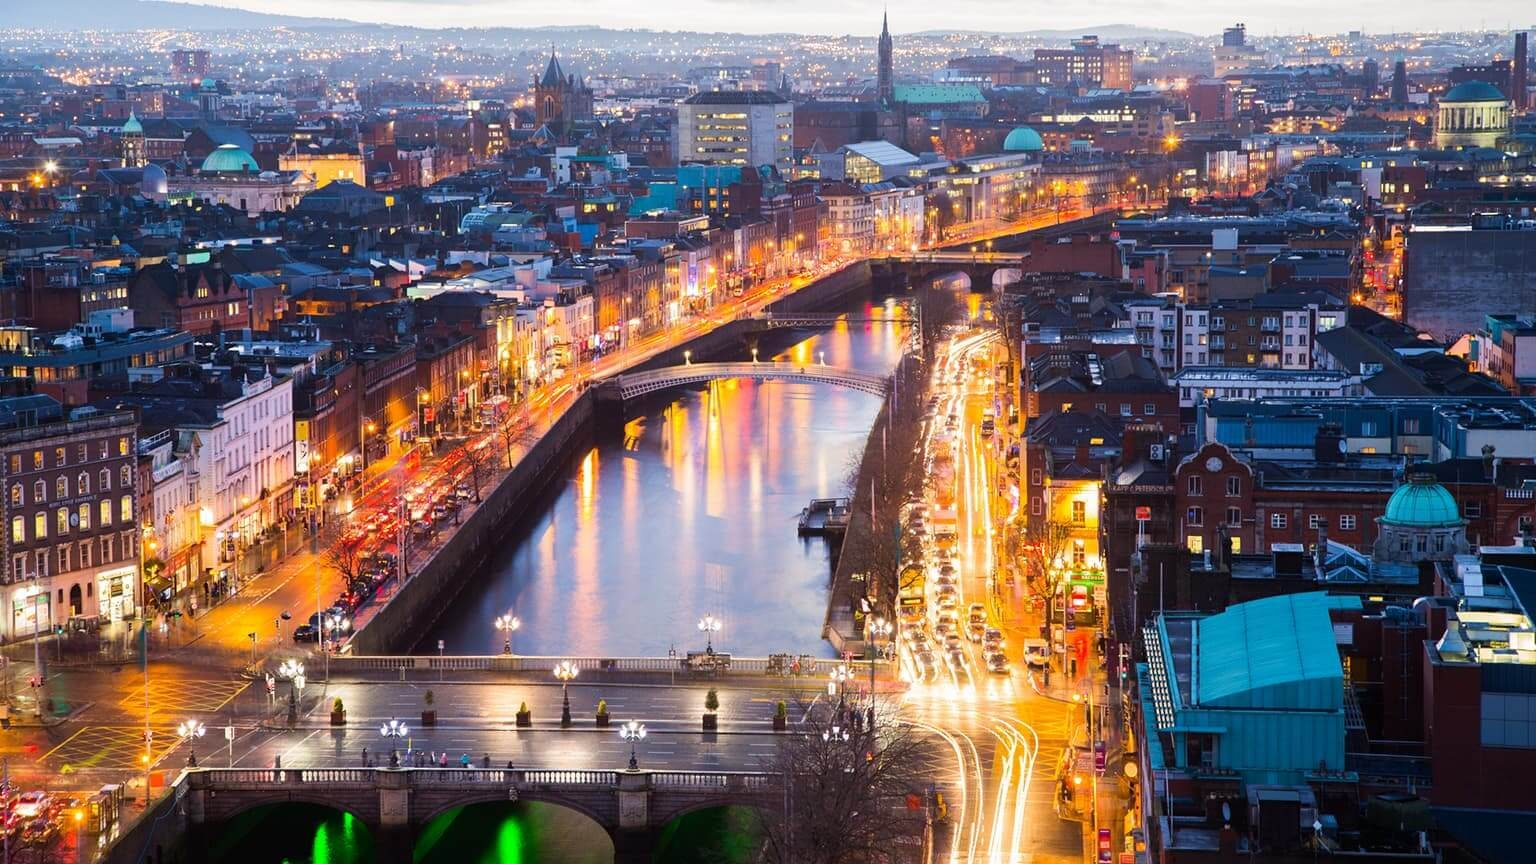 Viewpoint over O Connell Bridge and Dublin City